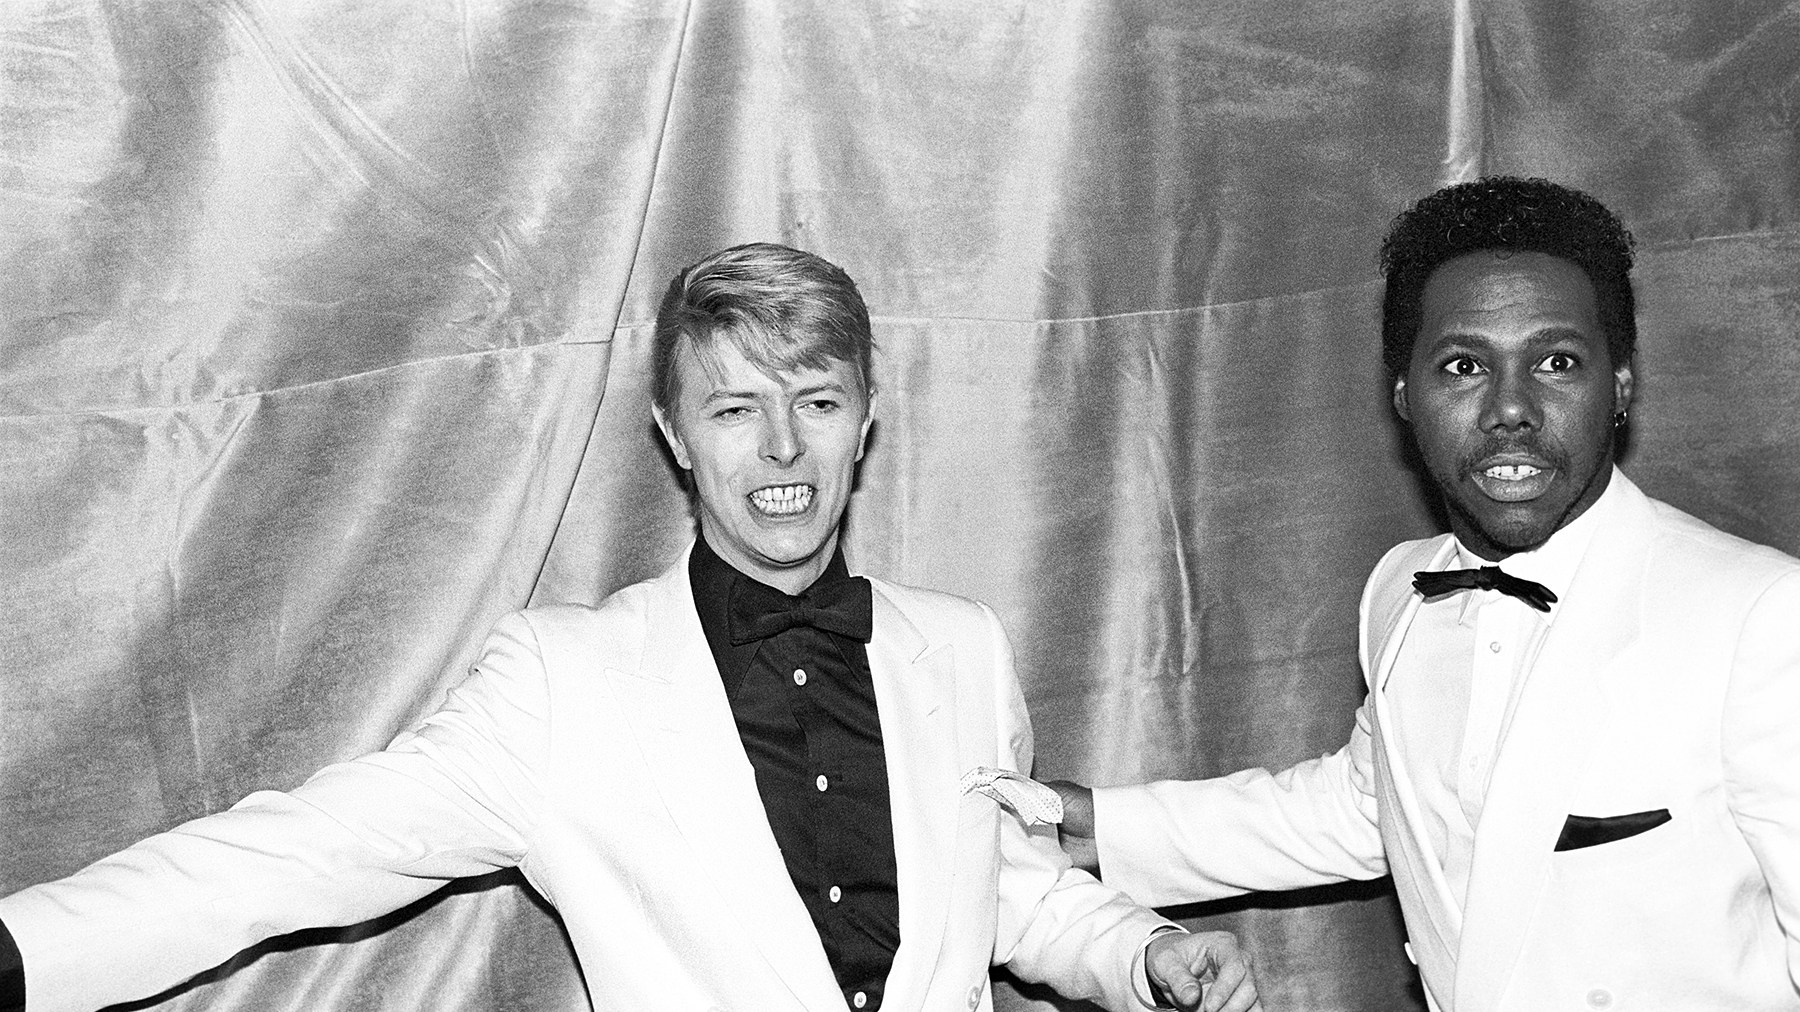 David Bowie and Nile Rodgers in 1983